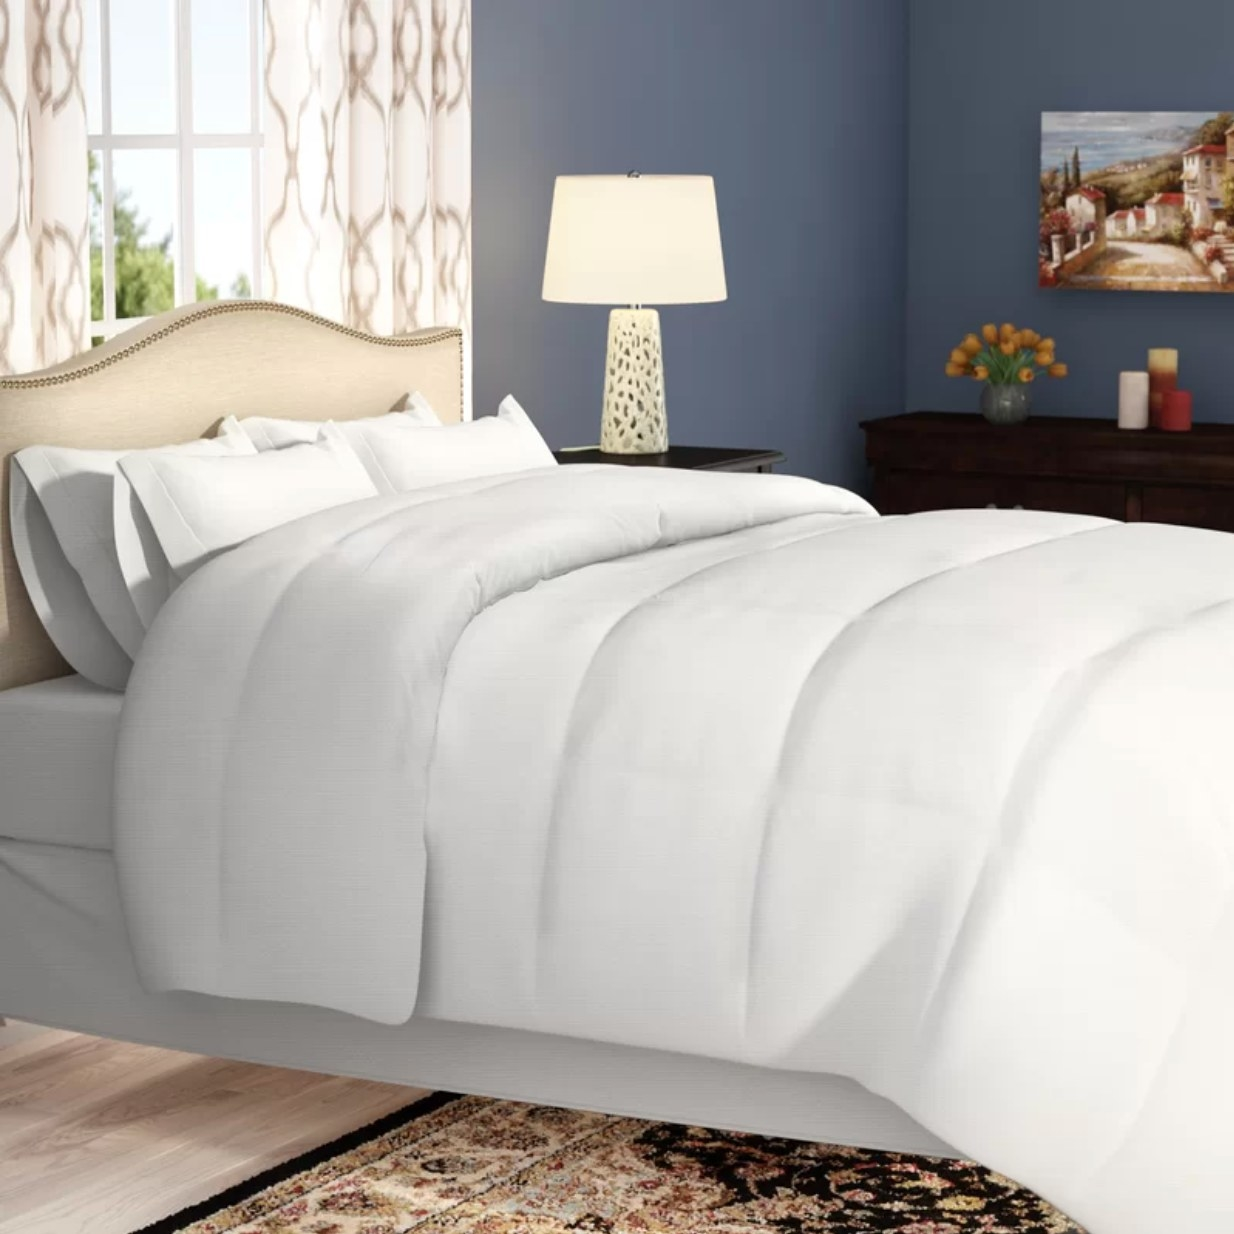 The reversible quilt on a bed